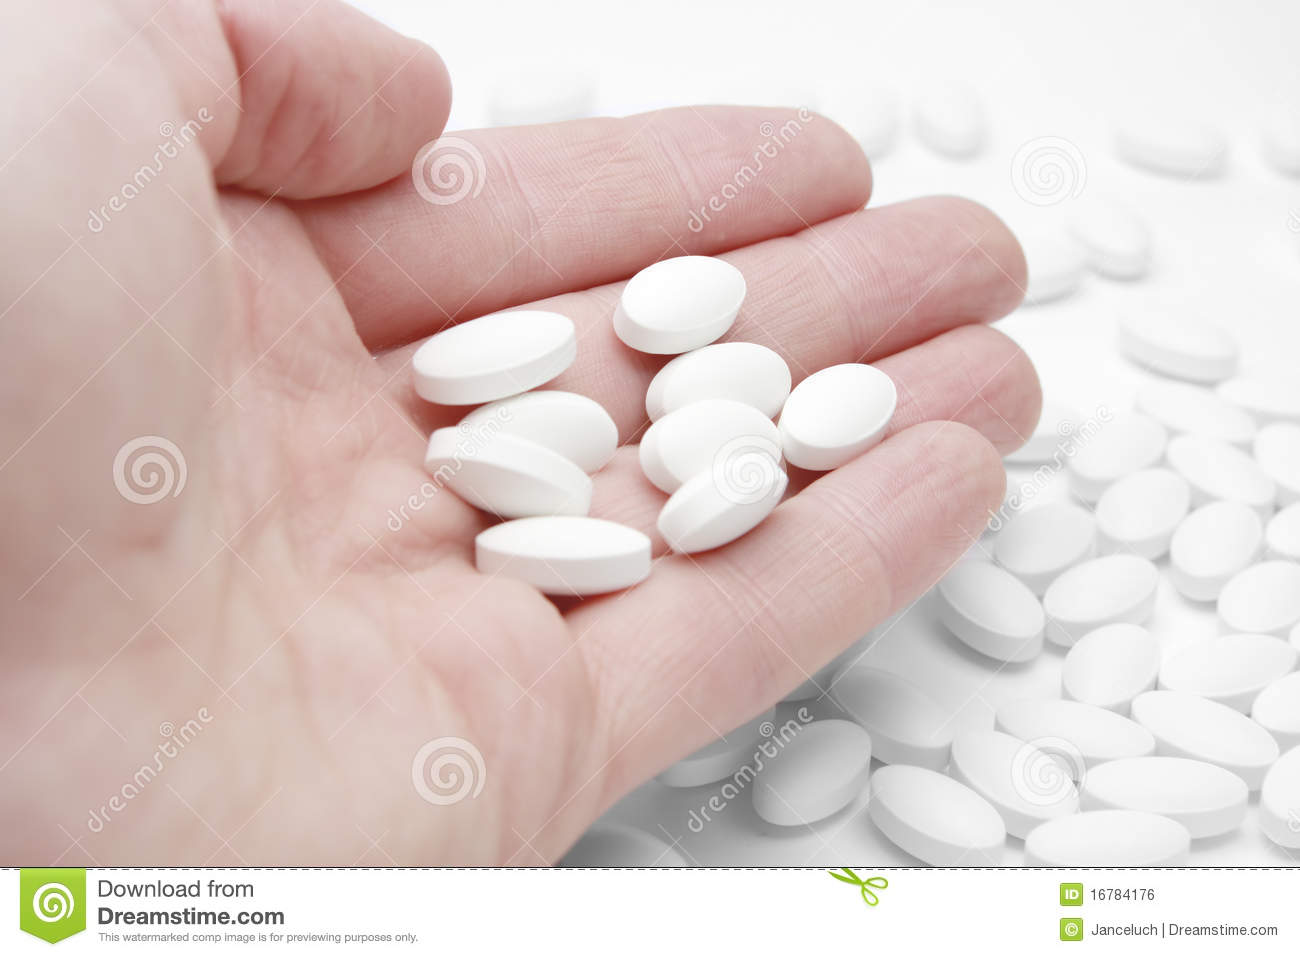 ... In Hand, Generic Drugs Royalty Free Stock Image - Image: 16784176